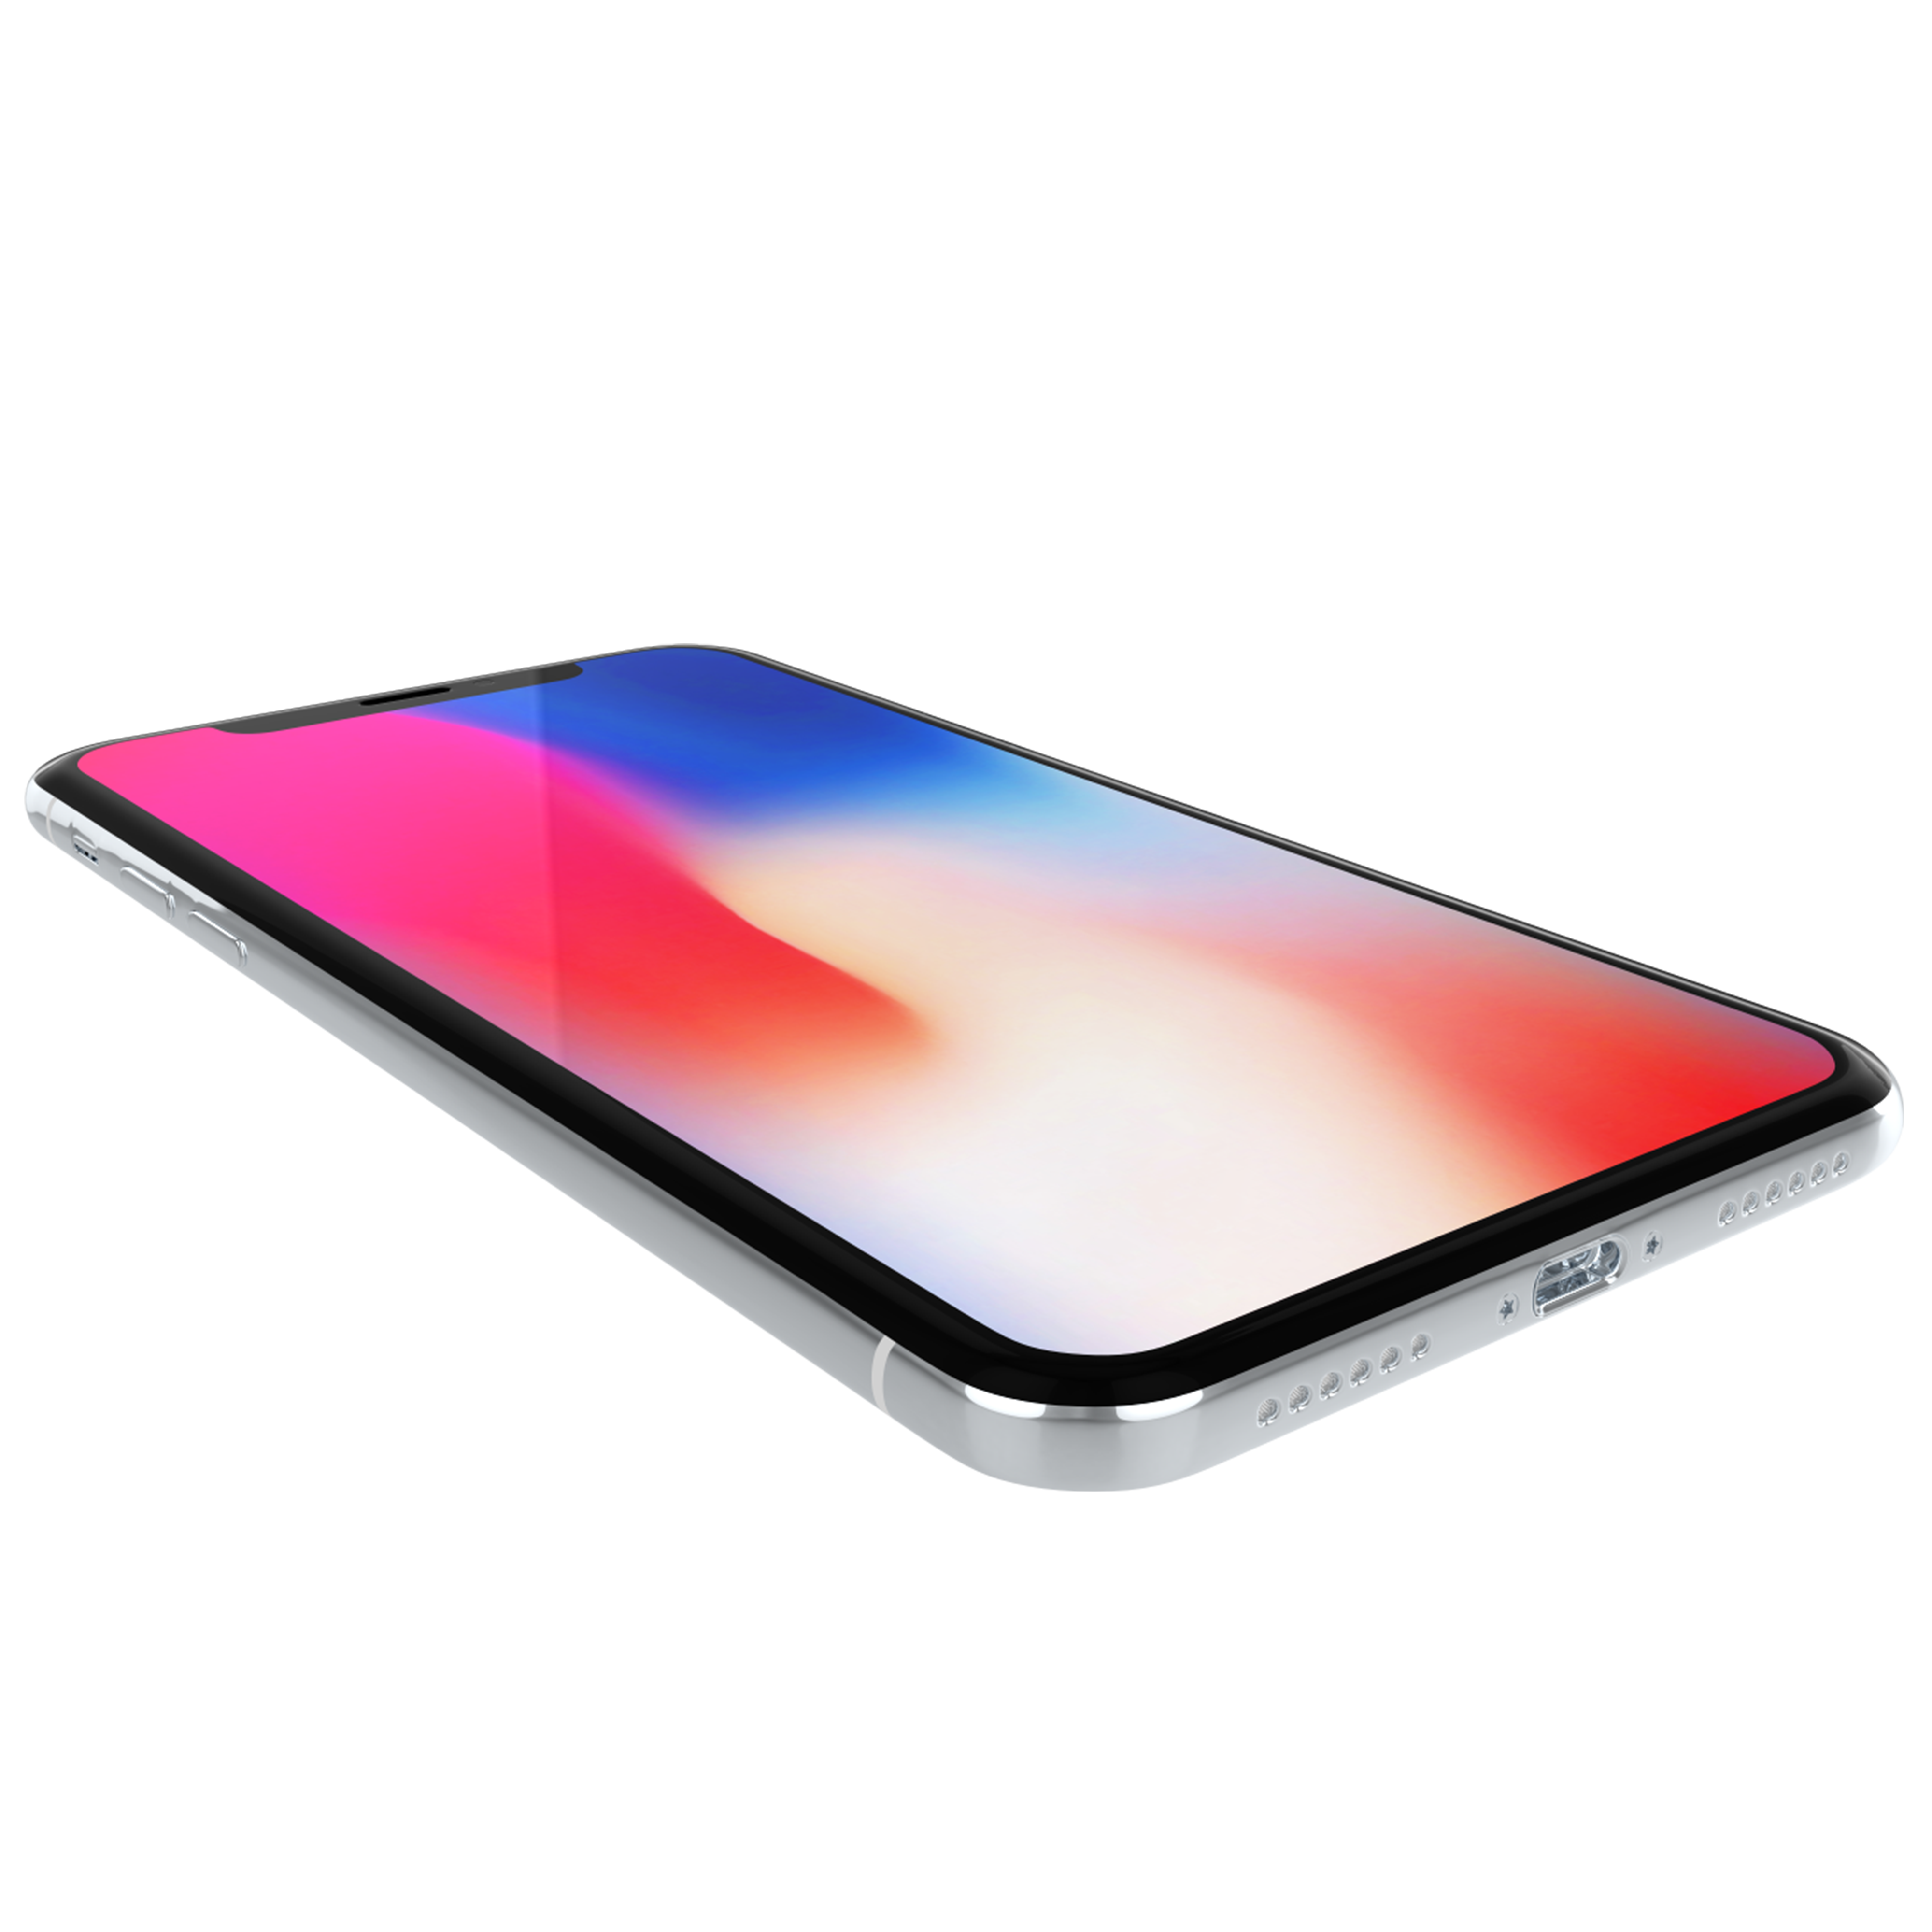 Apple iPhone X PNG Image.